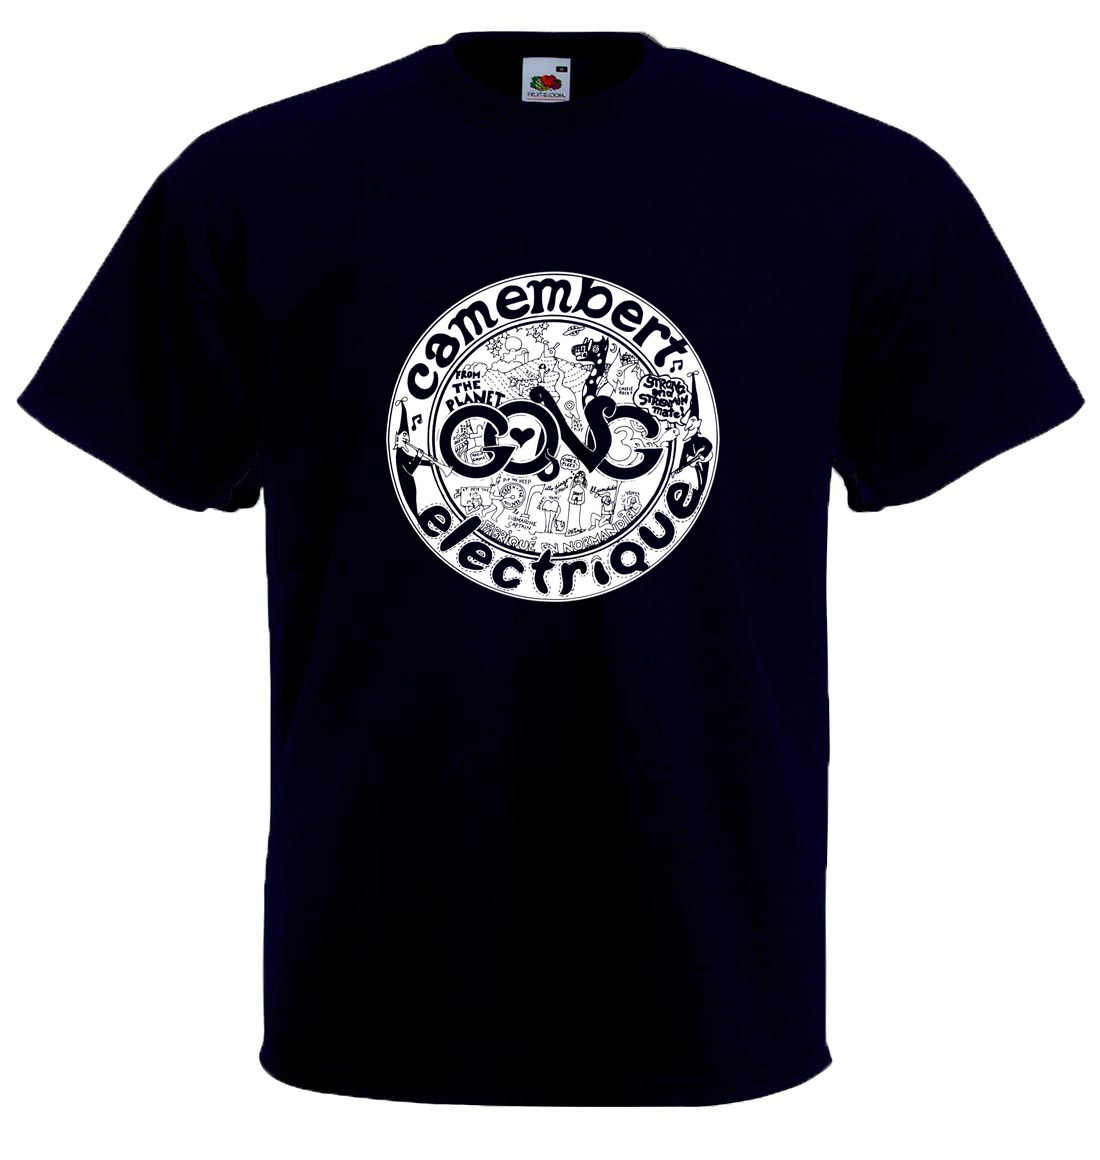 GONG-CAMEMBERT ELECTRIQUE tribute T-shirt